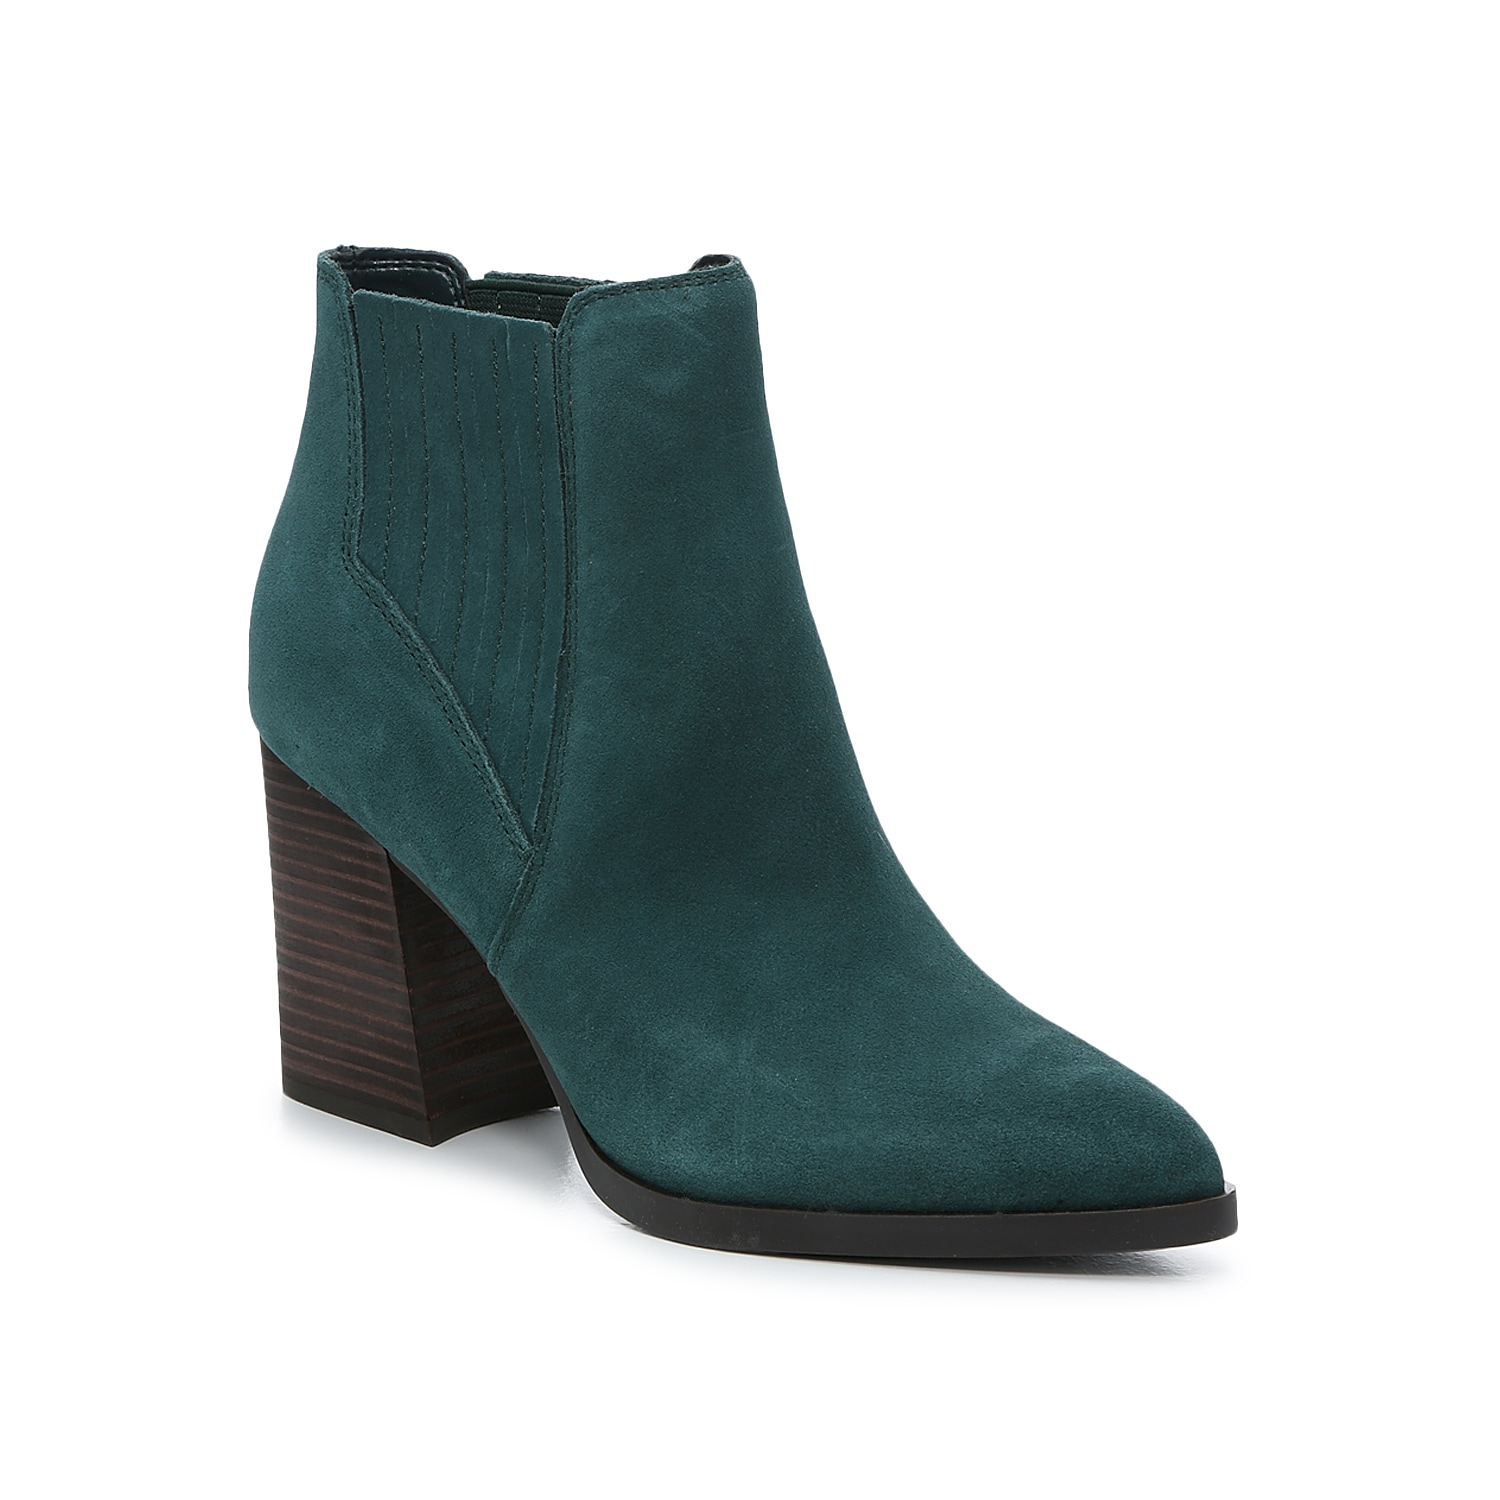 The Eilise bootie from Marc Fisher infuses elegance and poise to your ensemble. Made of leather or suede, it is fashioned with a pointed toe design, slanted heel, and hidden elastic gores for a stretch fit.Click here for Boot Measuring Guide.